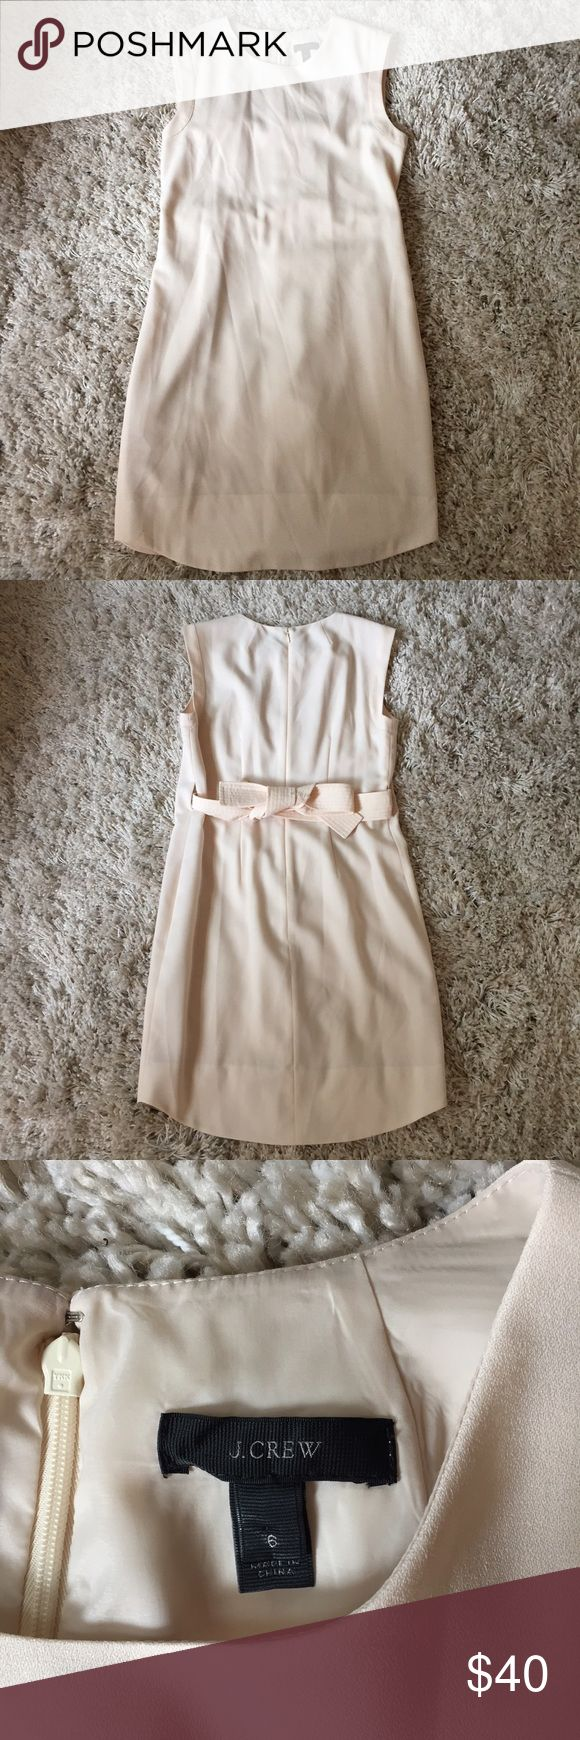 🐫SALE🐫 J. Crew Dress, Size 6 + Back zipper and clasp closure  + Small flaw in threading at one of the back straps. Flawless otherwise.  + Perfect for fall 🍂🍃 + Don't forget to bundle!   ⭐️All items are steamed cleaned and shipped within 48 hours of your purchase.   ⭐️If you would like any additional photos or have any questions please let me know.  ⭐️Sorry, no trades. But will listen to ALL fair offers. Thanks for shopping! J. Crew Dresses